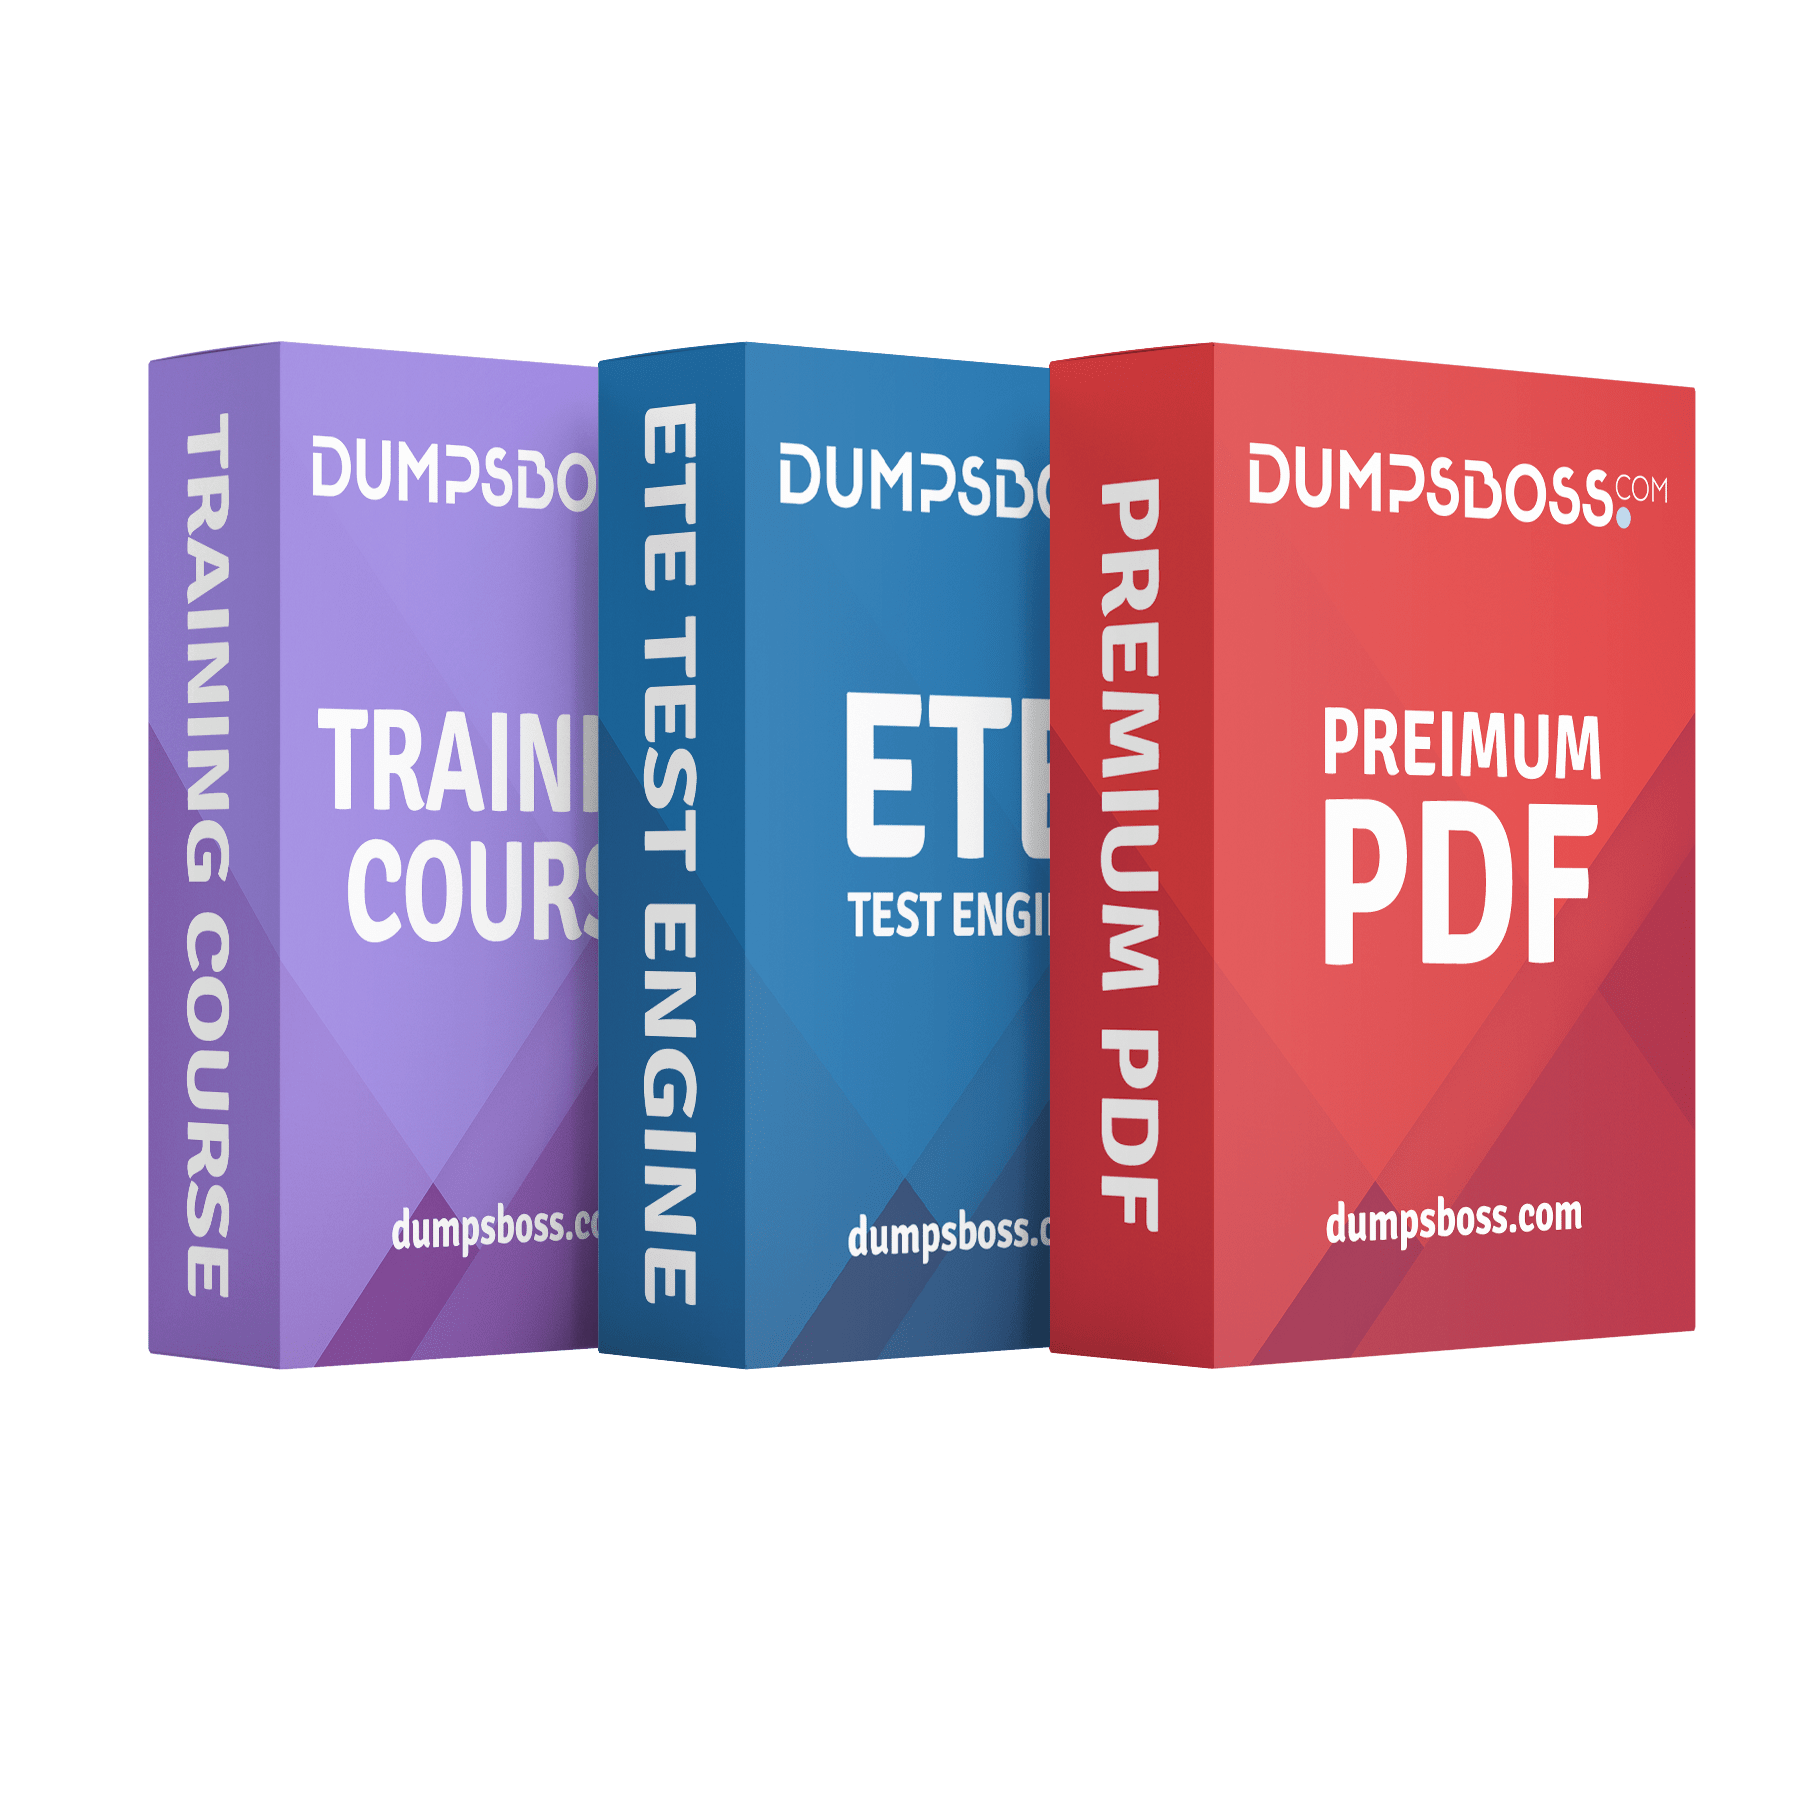 () PDF, ETE Test Engine and Training Course